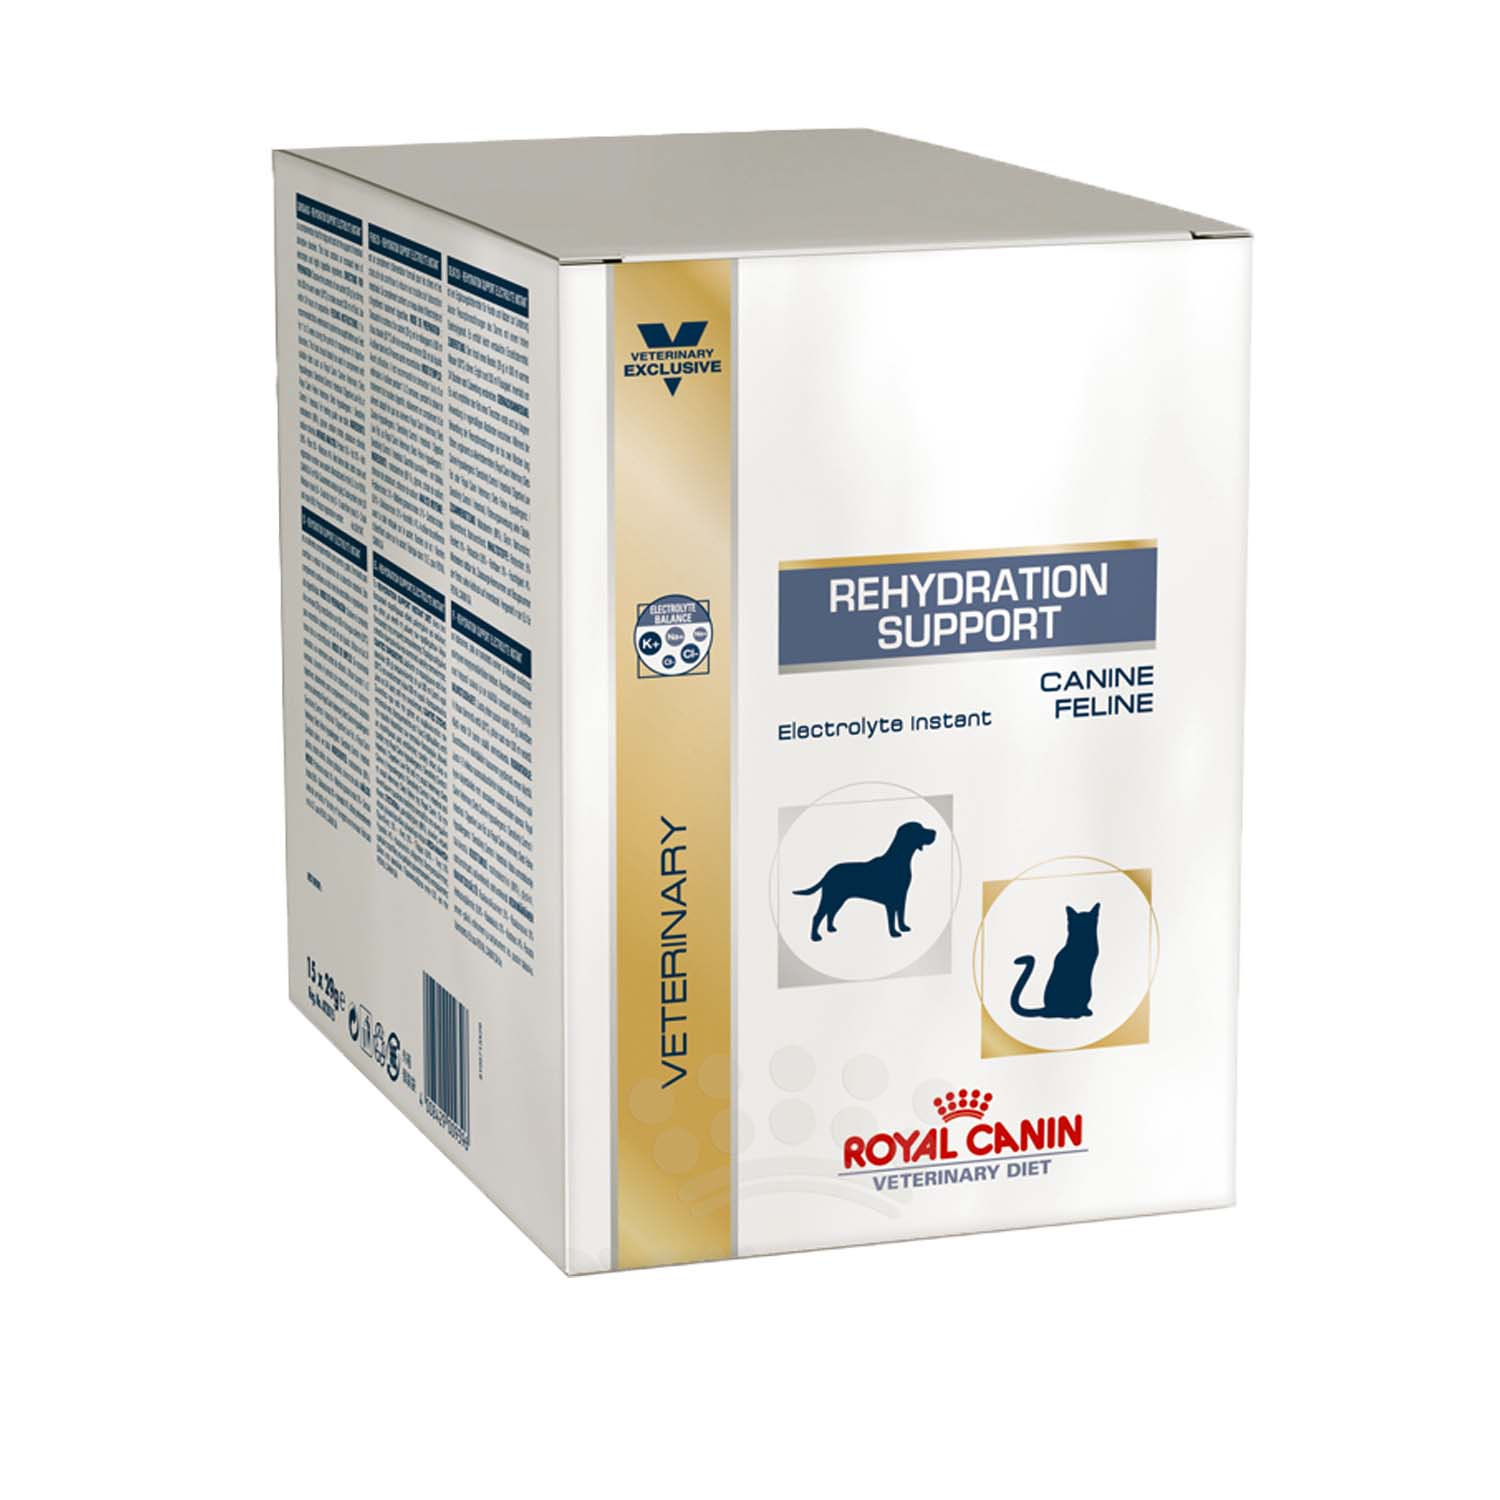 Royal Canin Rehydration Support 15 x 29 g